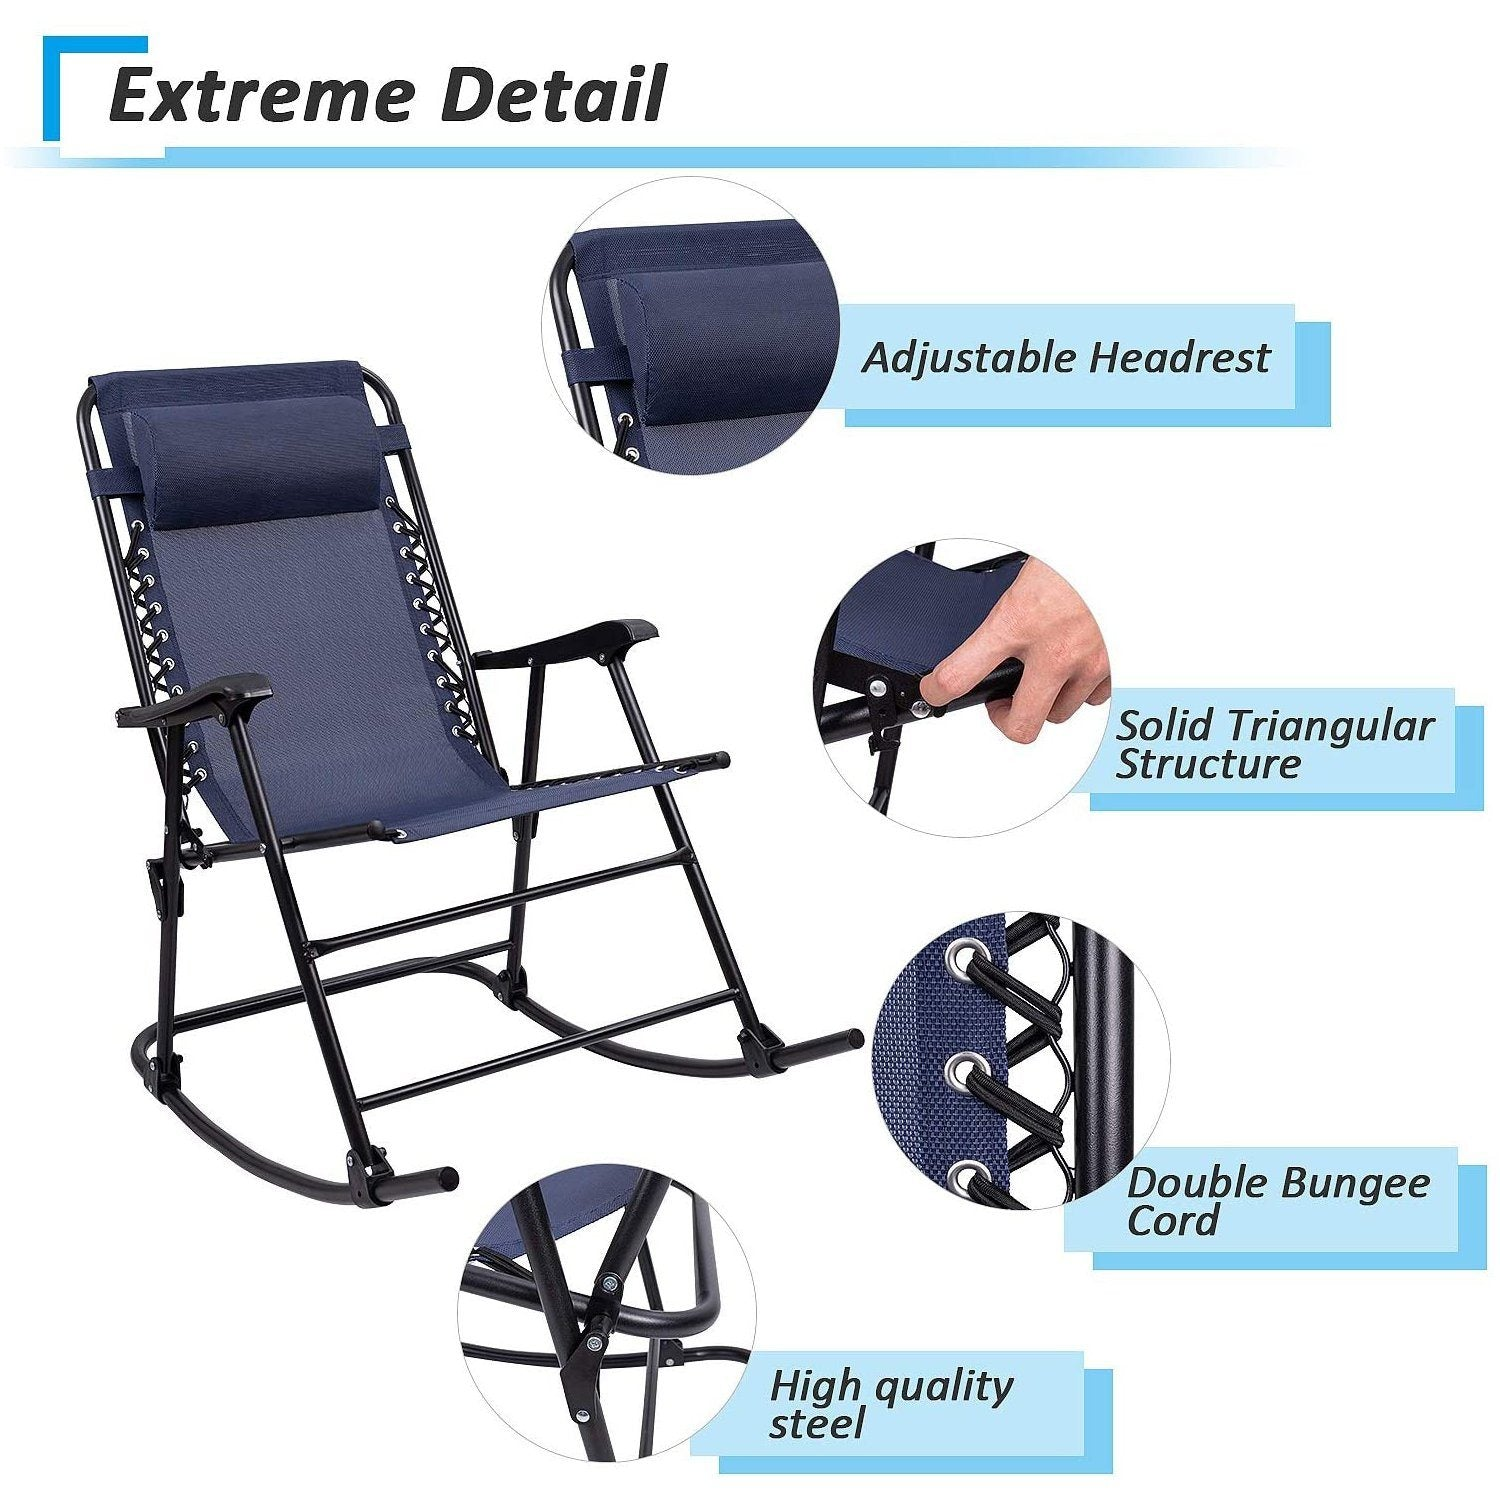 Picture of: Furniwell Patio Rocking Chair Zero Gravity Chair Outdoor Folding Recliner Foldable Lounge Chair Outdoor Pool Chair For Poolside And Camping Furniwell